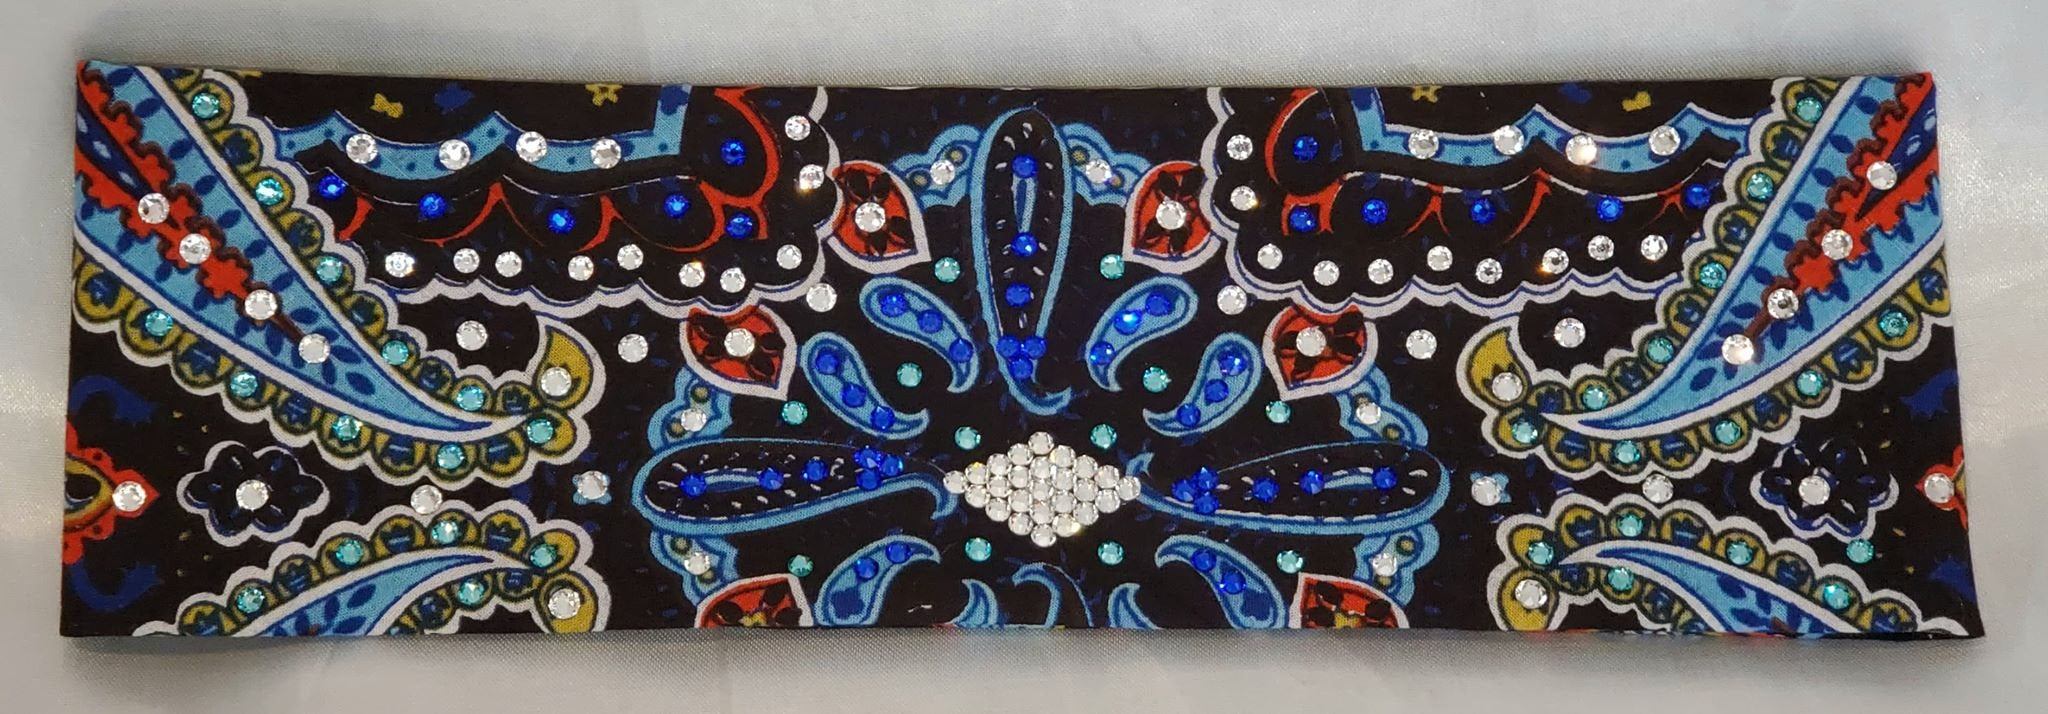 Blue Indian Design Bandana with Blue, Turquoise and Diamond Clear Swarovski Crystals (Sku1406)